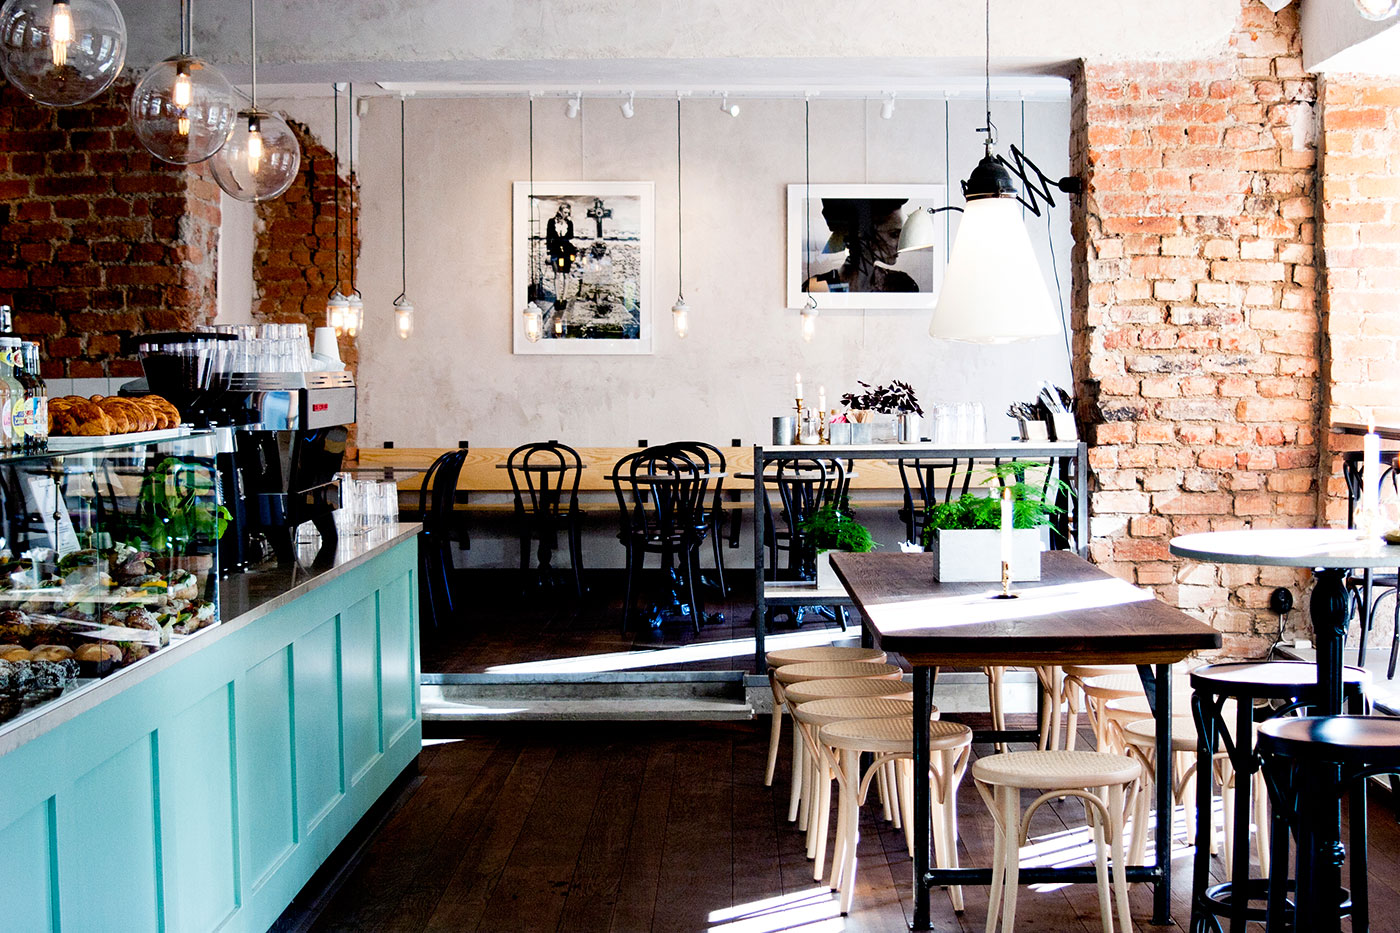 Photo of inside of a cafe with chairs and tables.